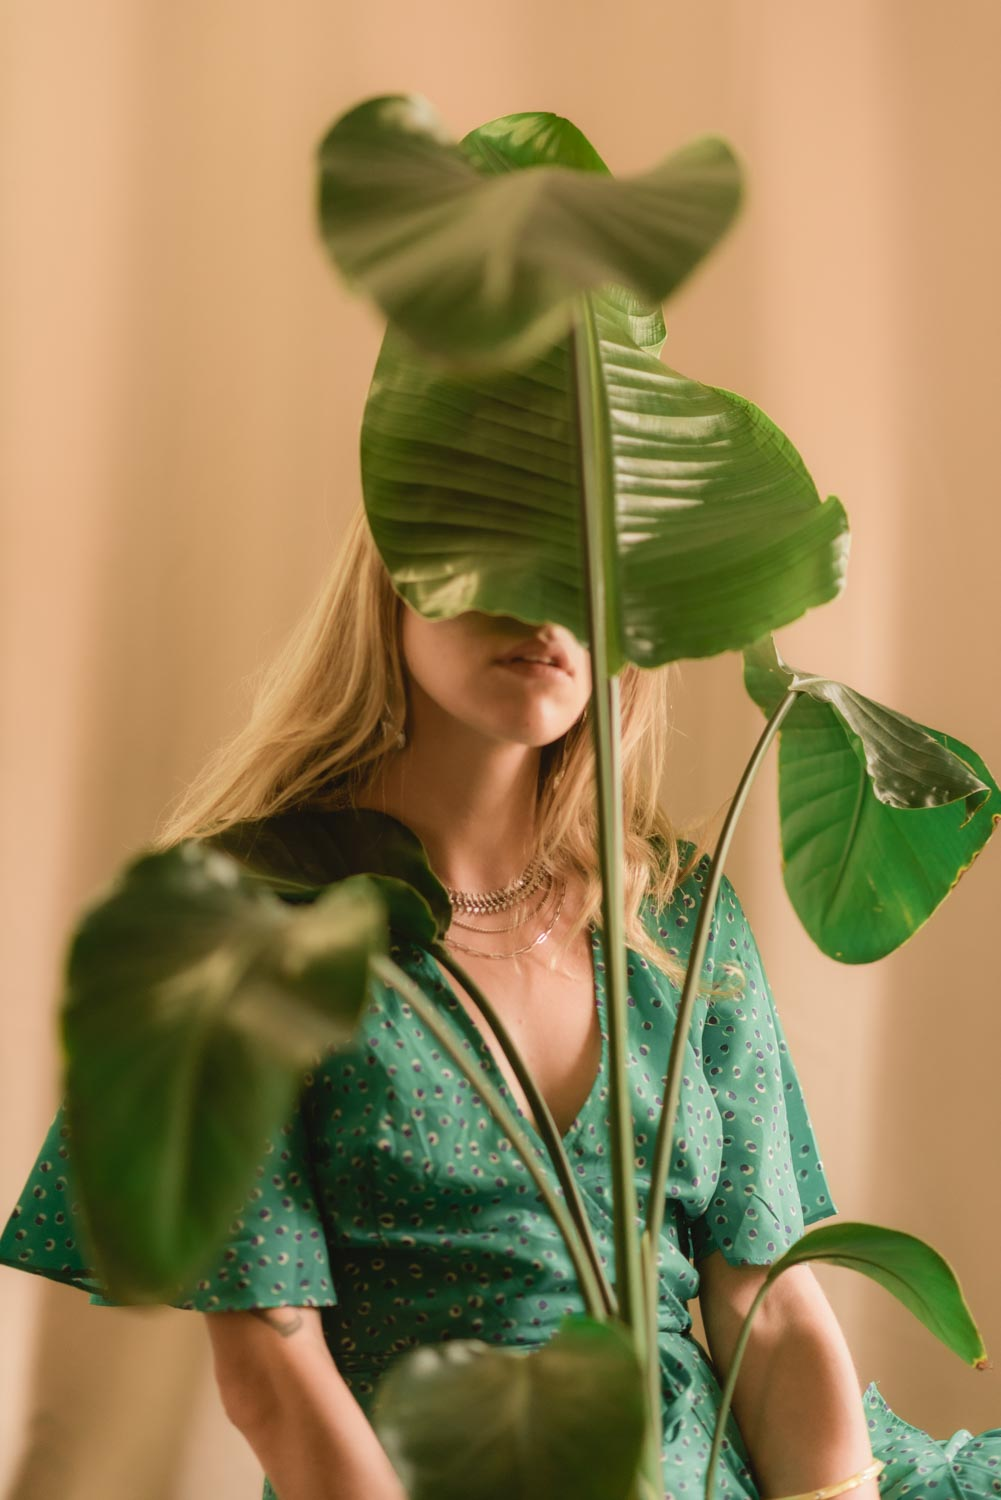 a portrait of Amanda with one of her plants covering her face partially.